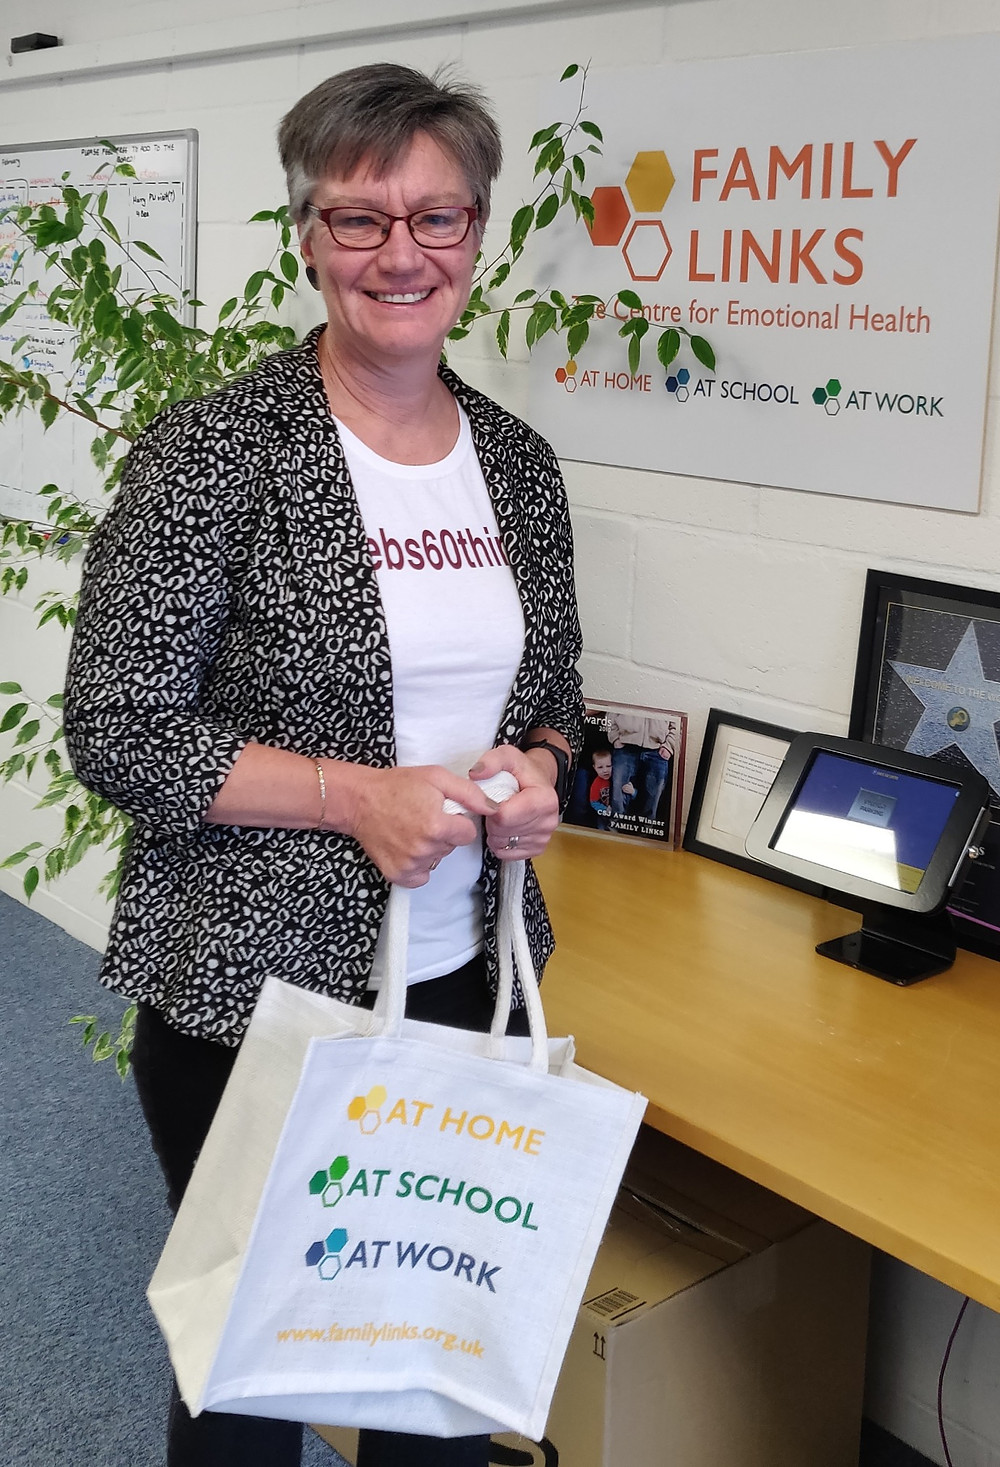 Deborah Wallis stands holding a Links tote bag, against a wall with the Family Links logo in the background